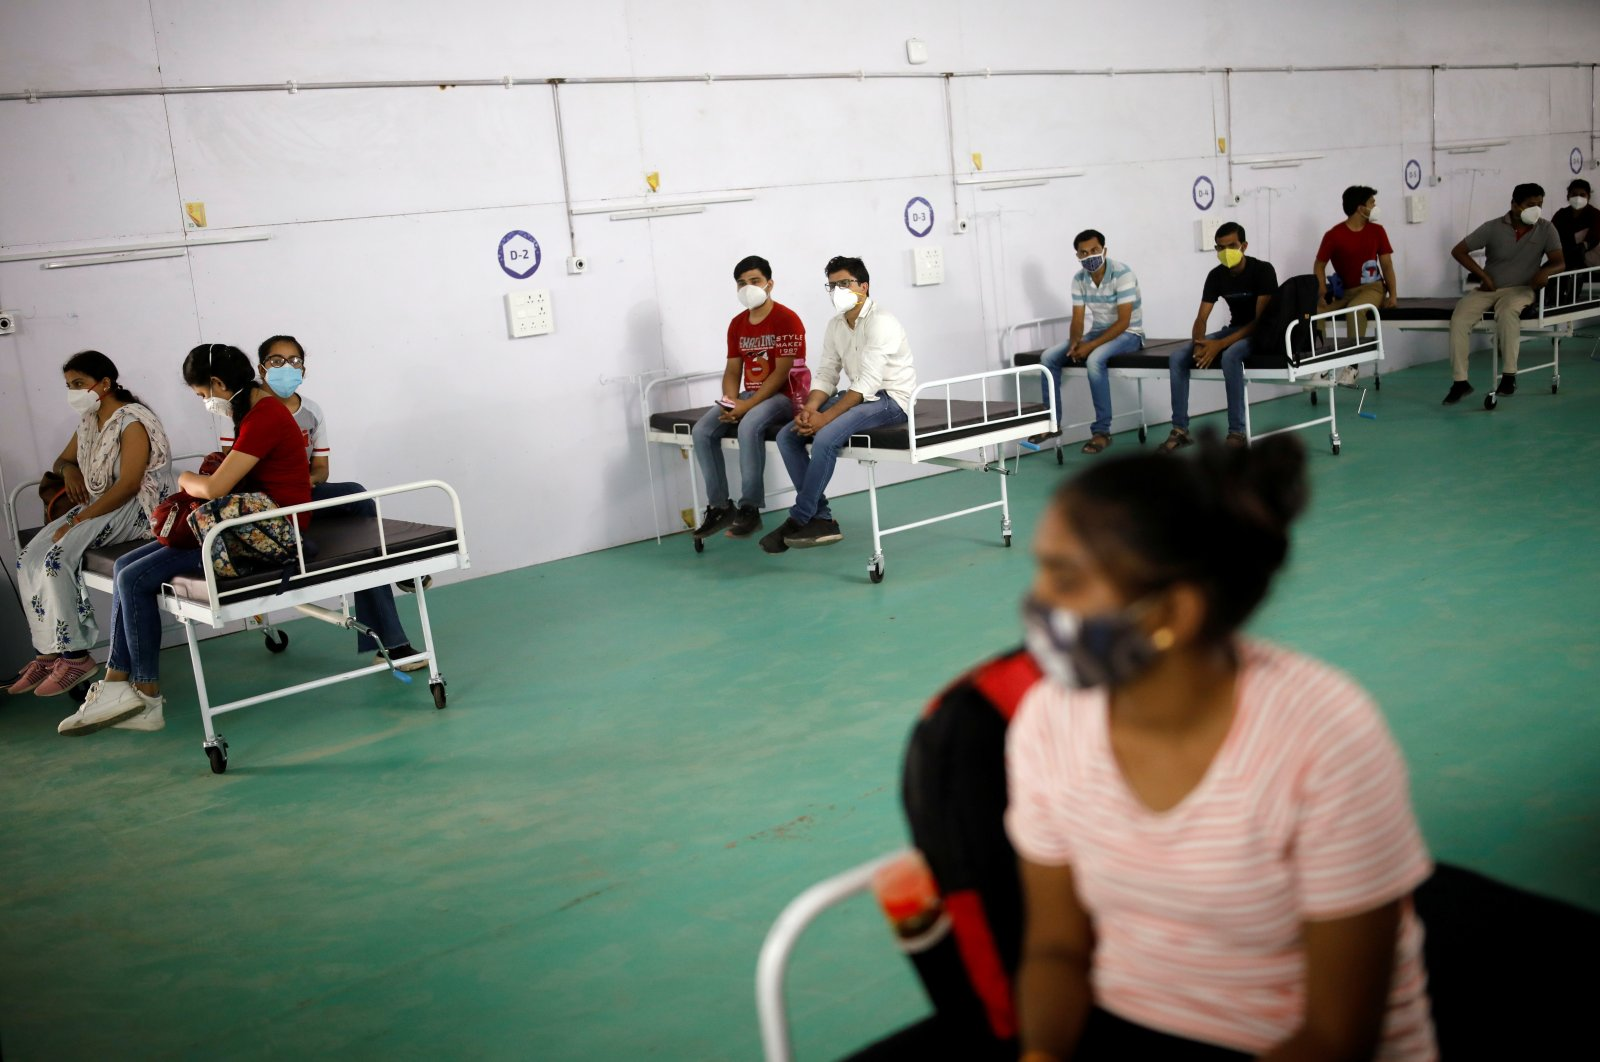 Medical workers sit on beds as they listen to a doctor during their briefing at the site of a temporary coronavirus care facility, at Ramlila Ground, in New Delhi, India, May 12, 2021. (Reuters Photo)